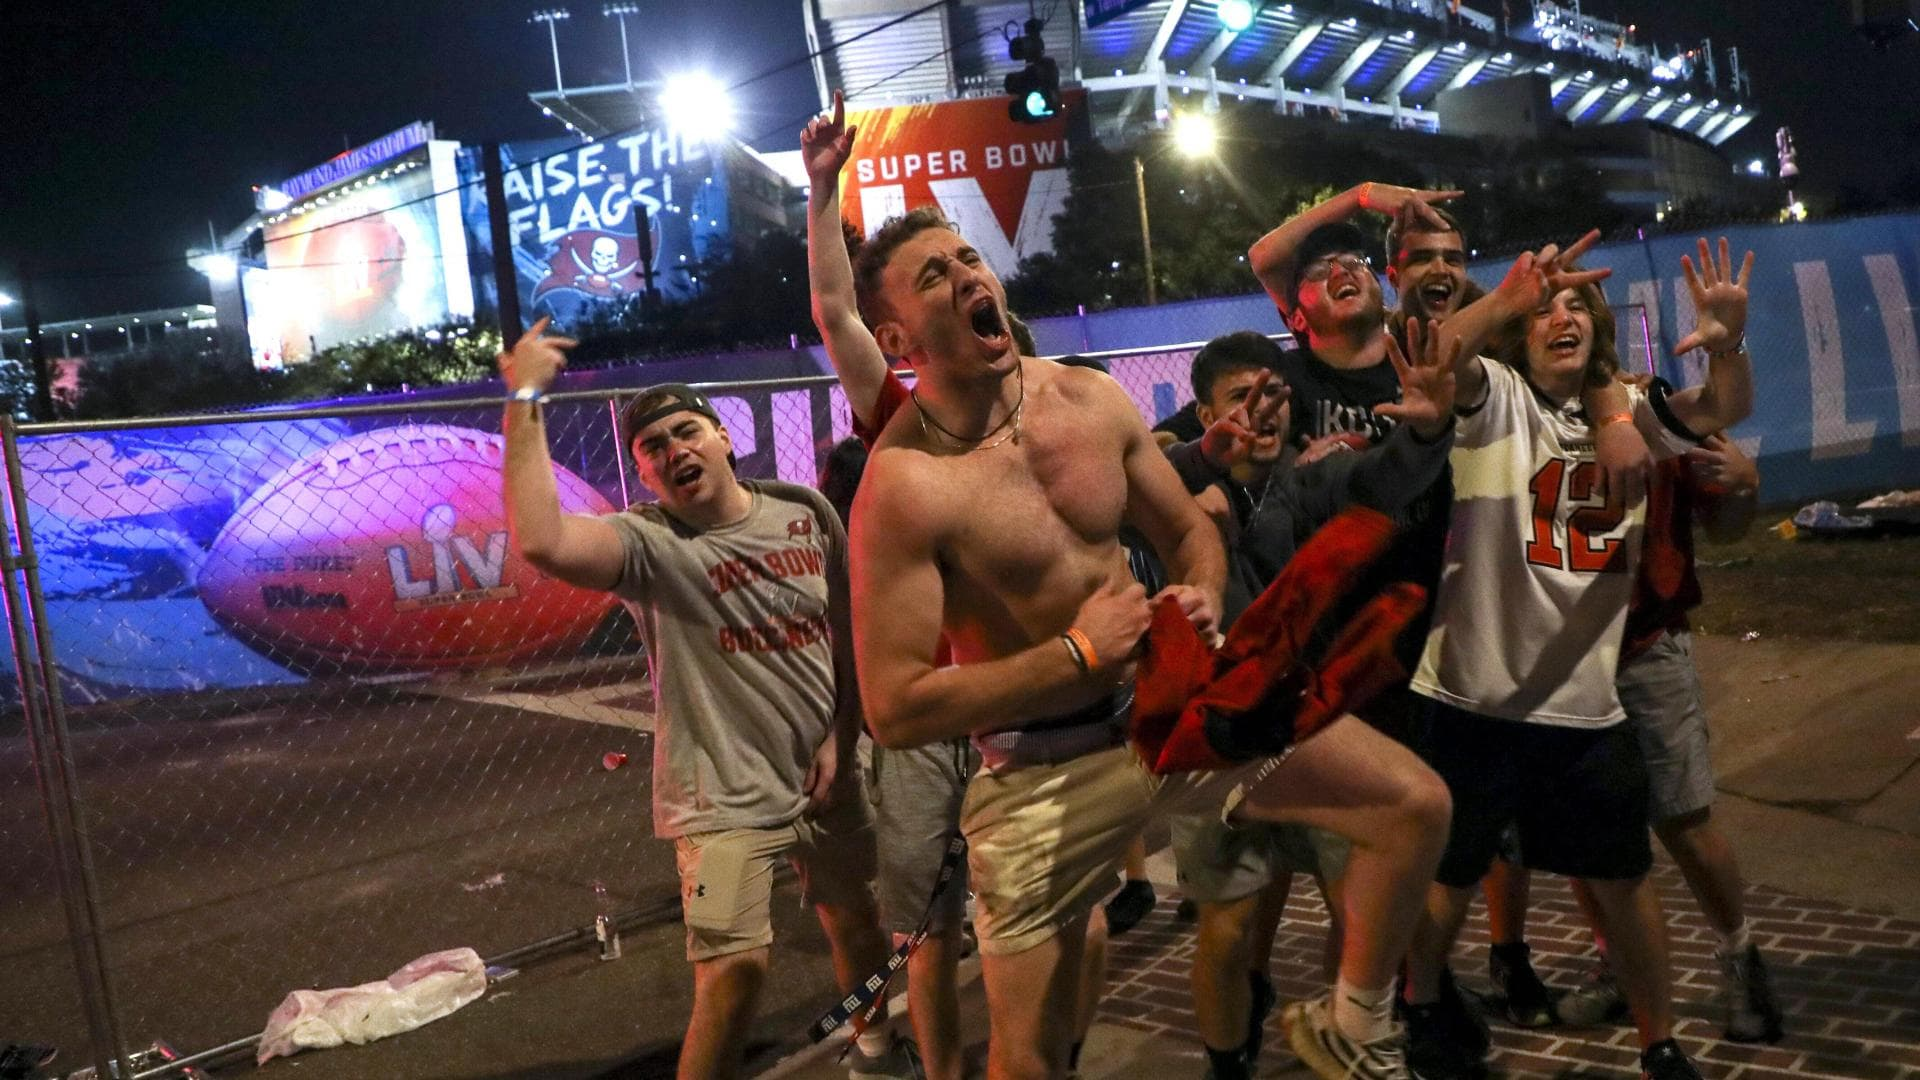 February 7, 2021, Tampa, Florida, USA: Fans celebrate theTampa Bay Buccaneers victory over the Kansas City Chiefs in Super Bowl 55 outside Raymond James Stadium in Tampa on Sunday, Feb. 7, 2021. Tampa USA - ZUMAs70_ 0112361876st Copyright: xIvyxCeballox